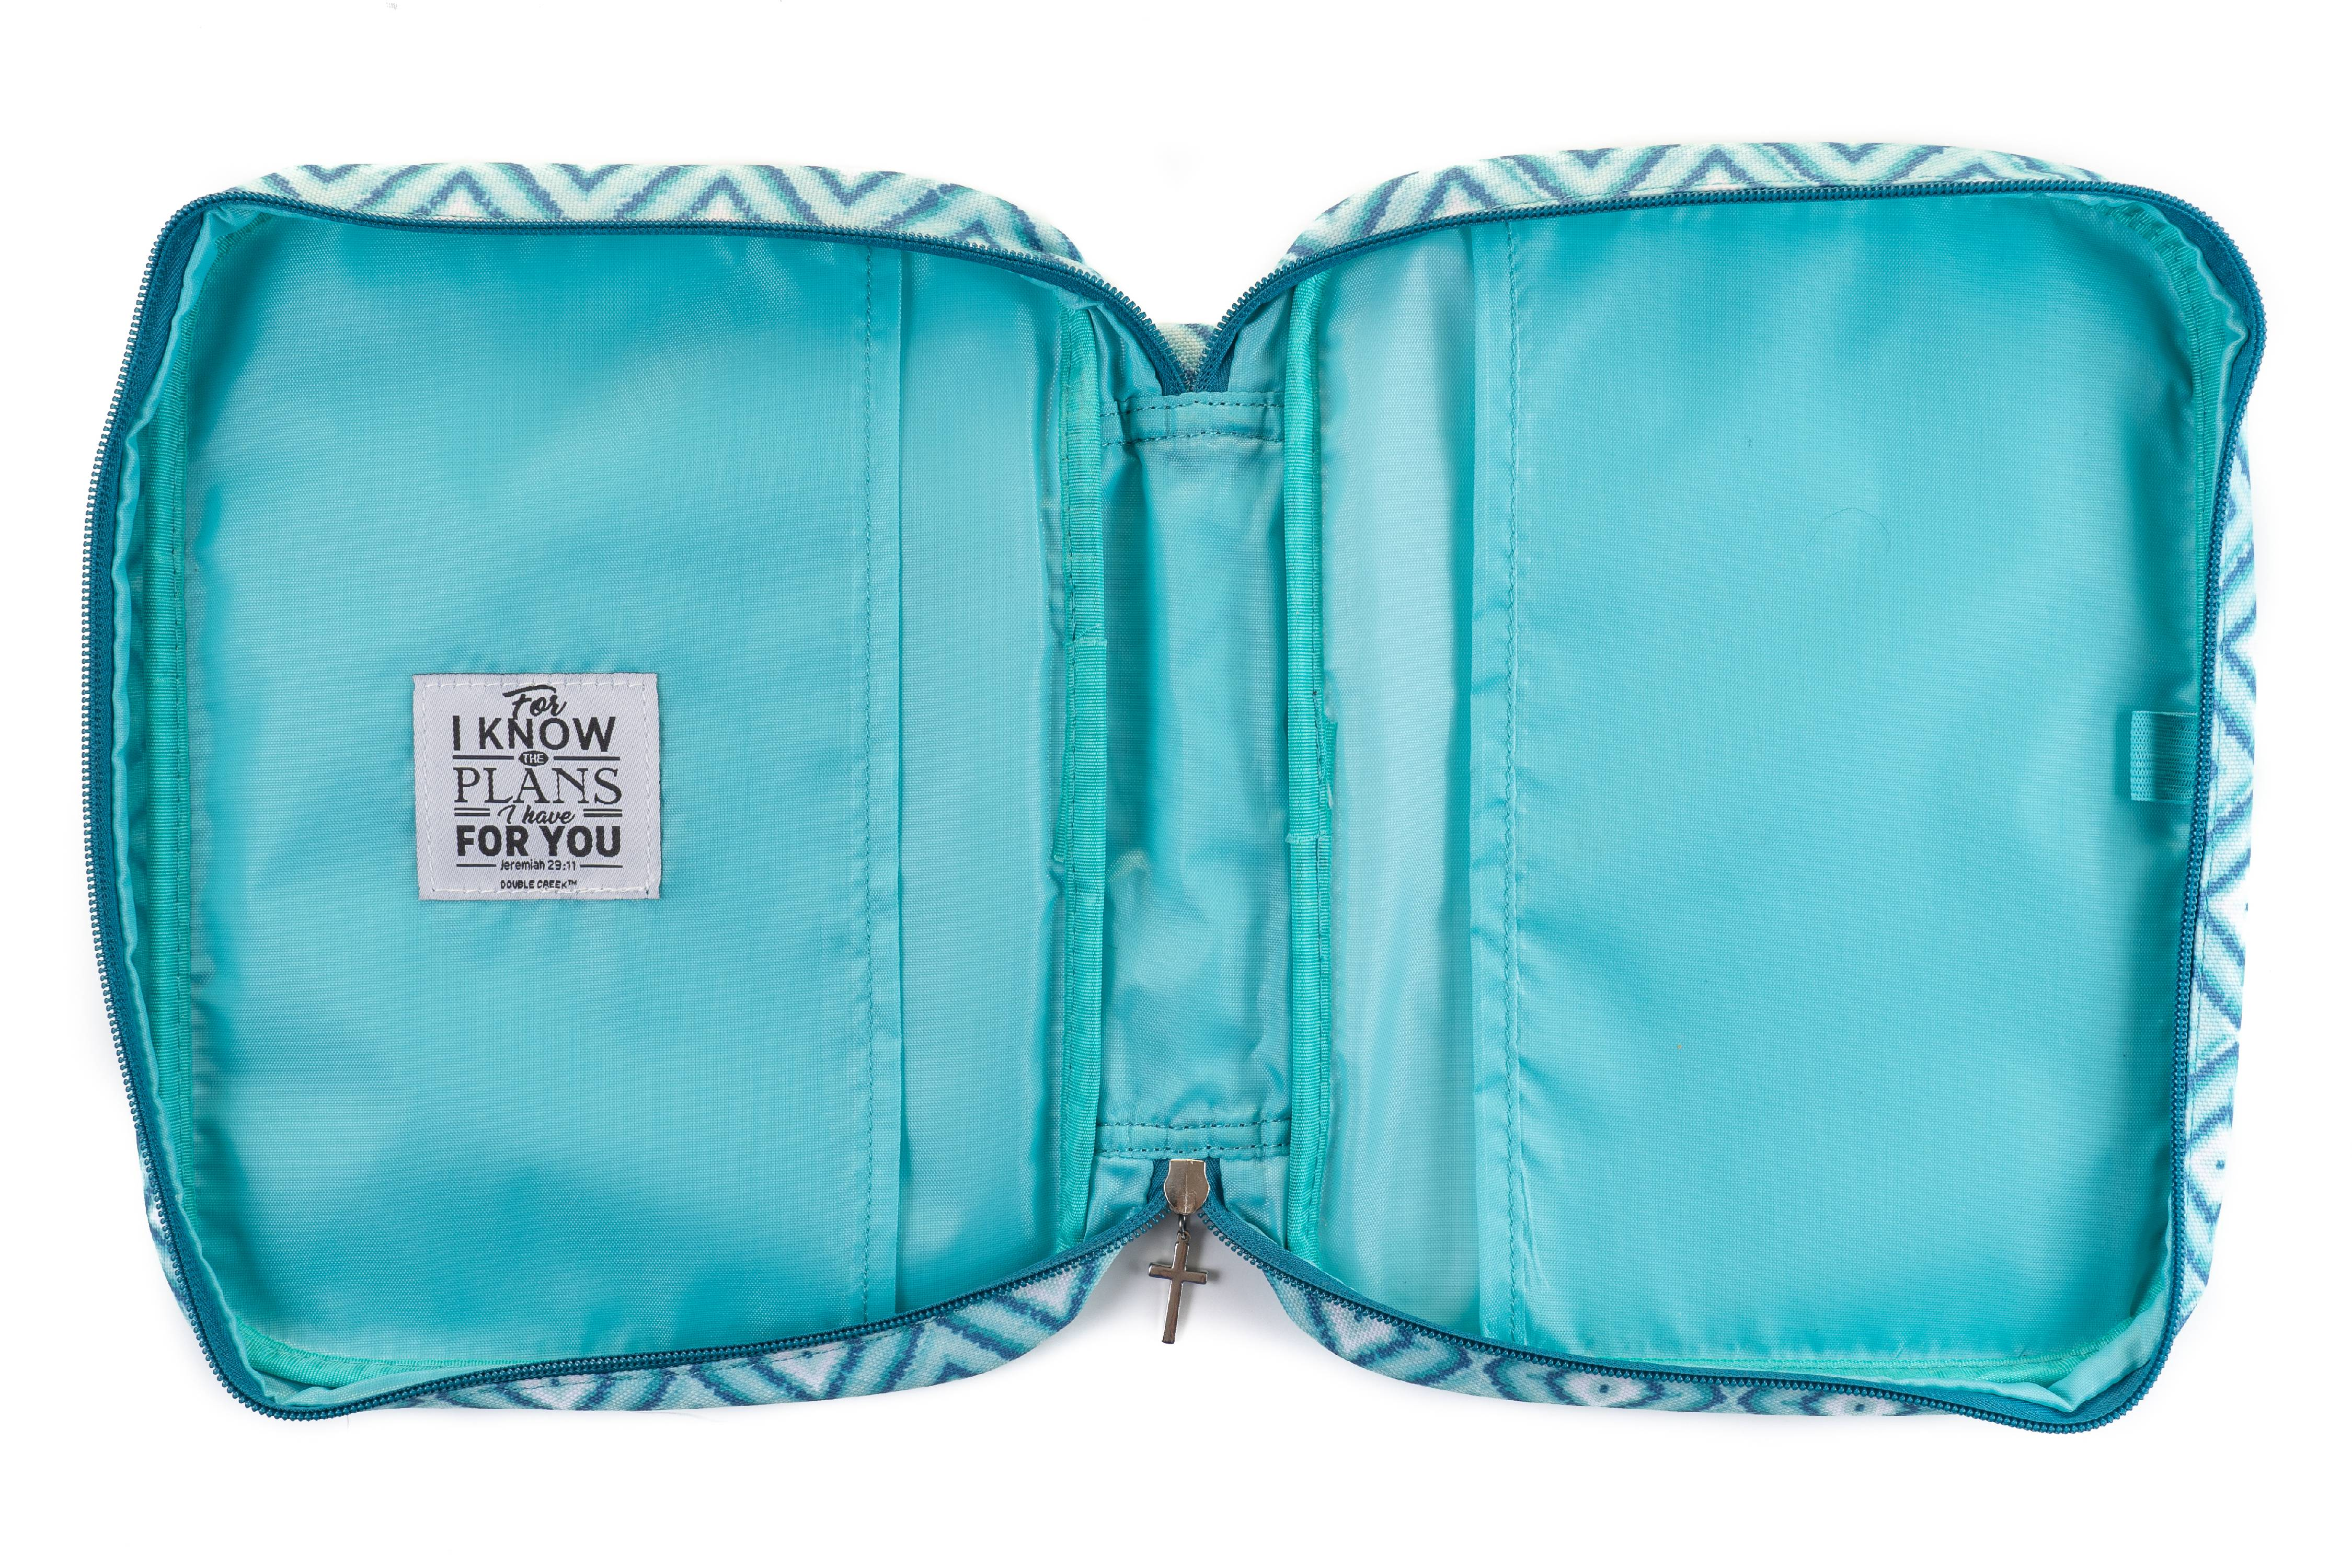 Double Creek Bible Case Cover for Women Zippered Carrying Case Organizer with Handles /& Pockets Jeremiah 29:11 for I Know The Plans I Have for You